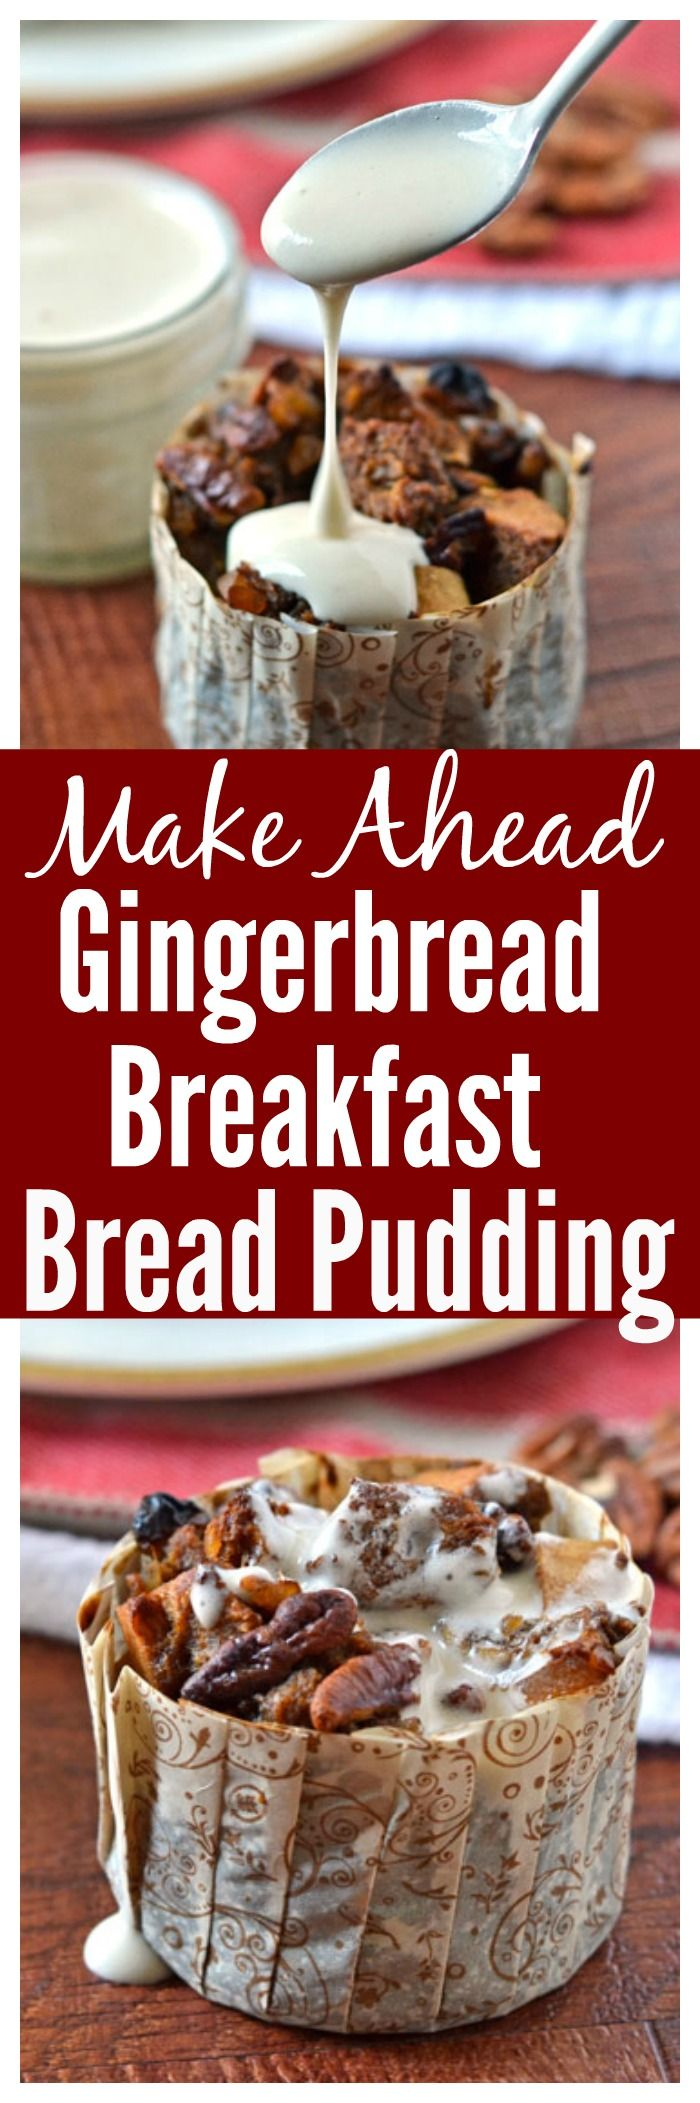 Make Ahead Gingerbread Breakfast Bread Pudding with Bourbon Sauce. Perfect recipe for holiday breakfast and brunch!